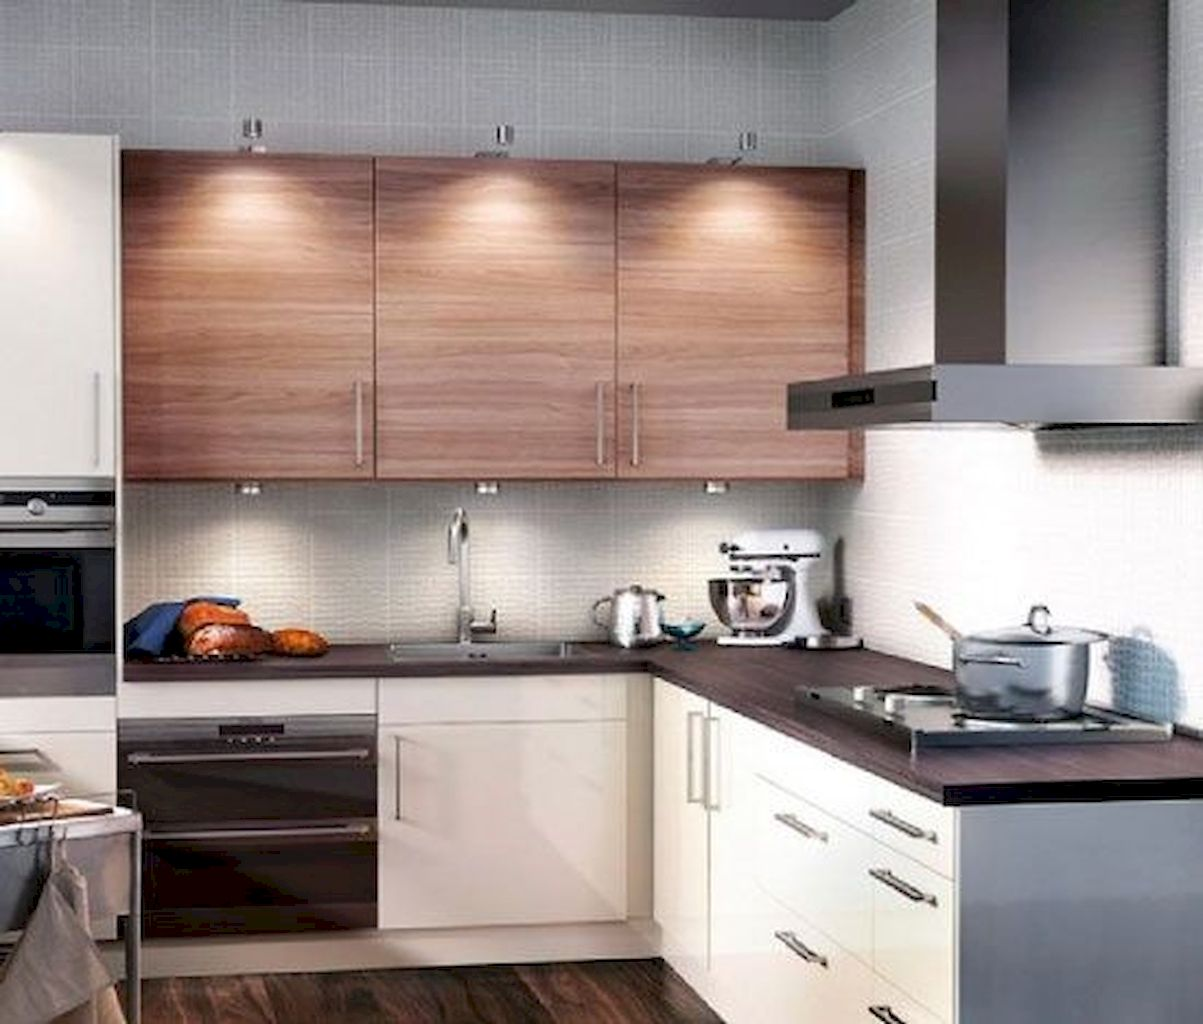 Kitchen Plan And Design For Small Room (52)